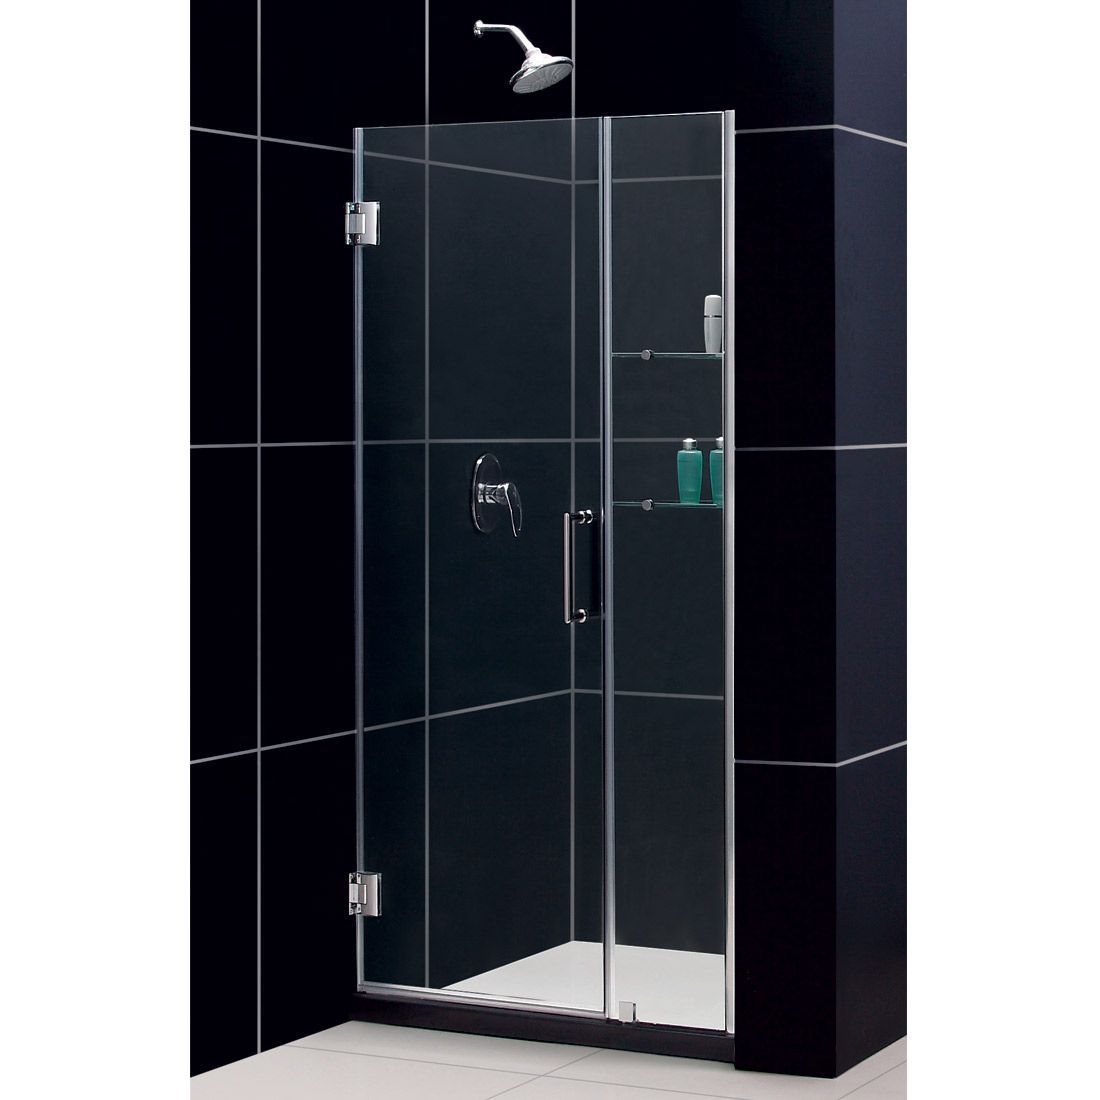 Vigo Vg607228 In 2019 Shower Doors Frameless Shower Doors